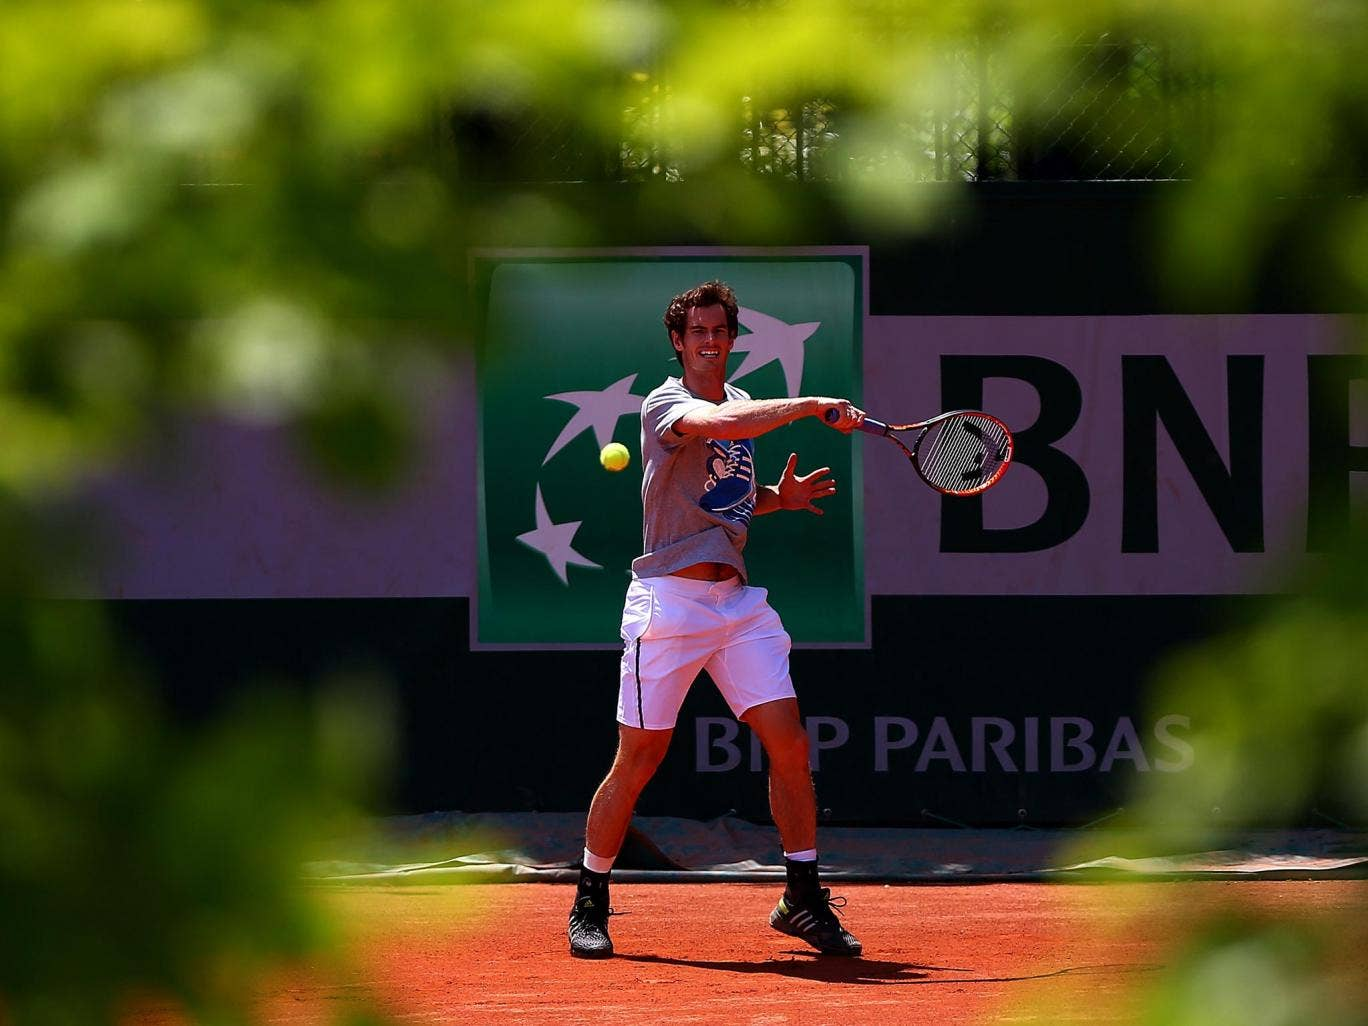 Andy Murray returns a shot during a practice session at Roland Garros yesterday, hoping to deny the world No 1 Rafa Nadal a ninth French Open final place